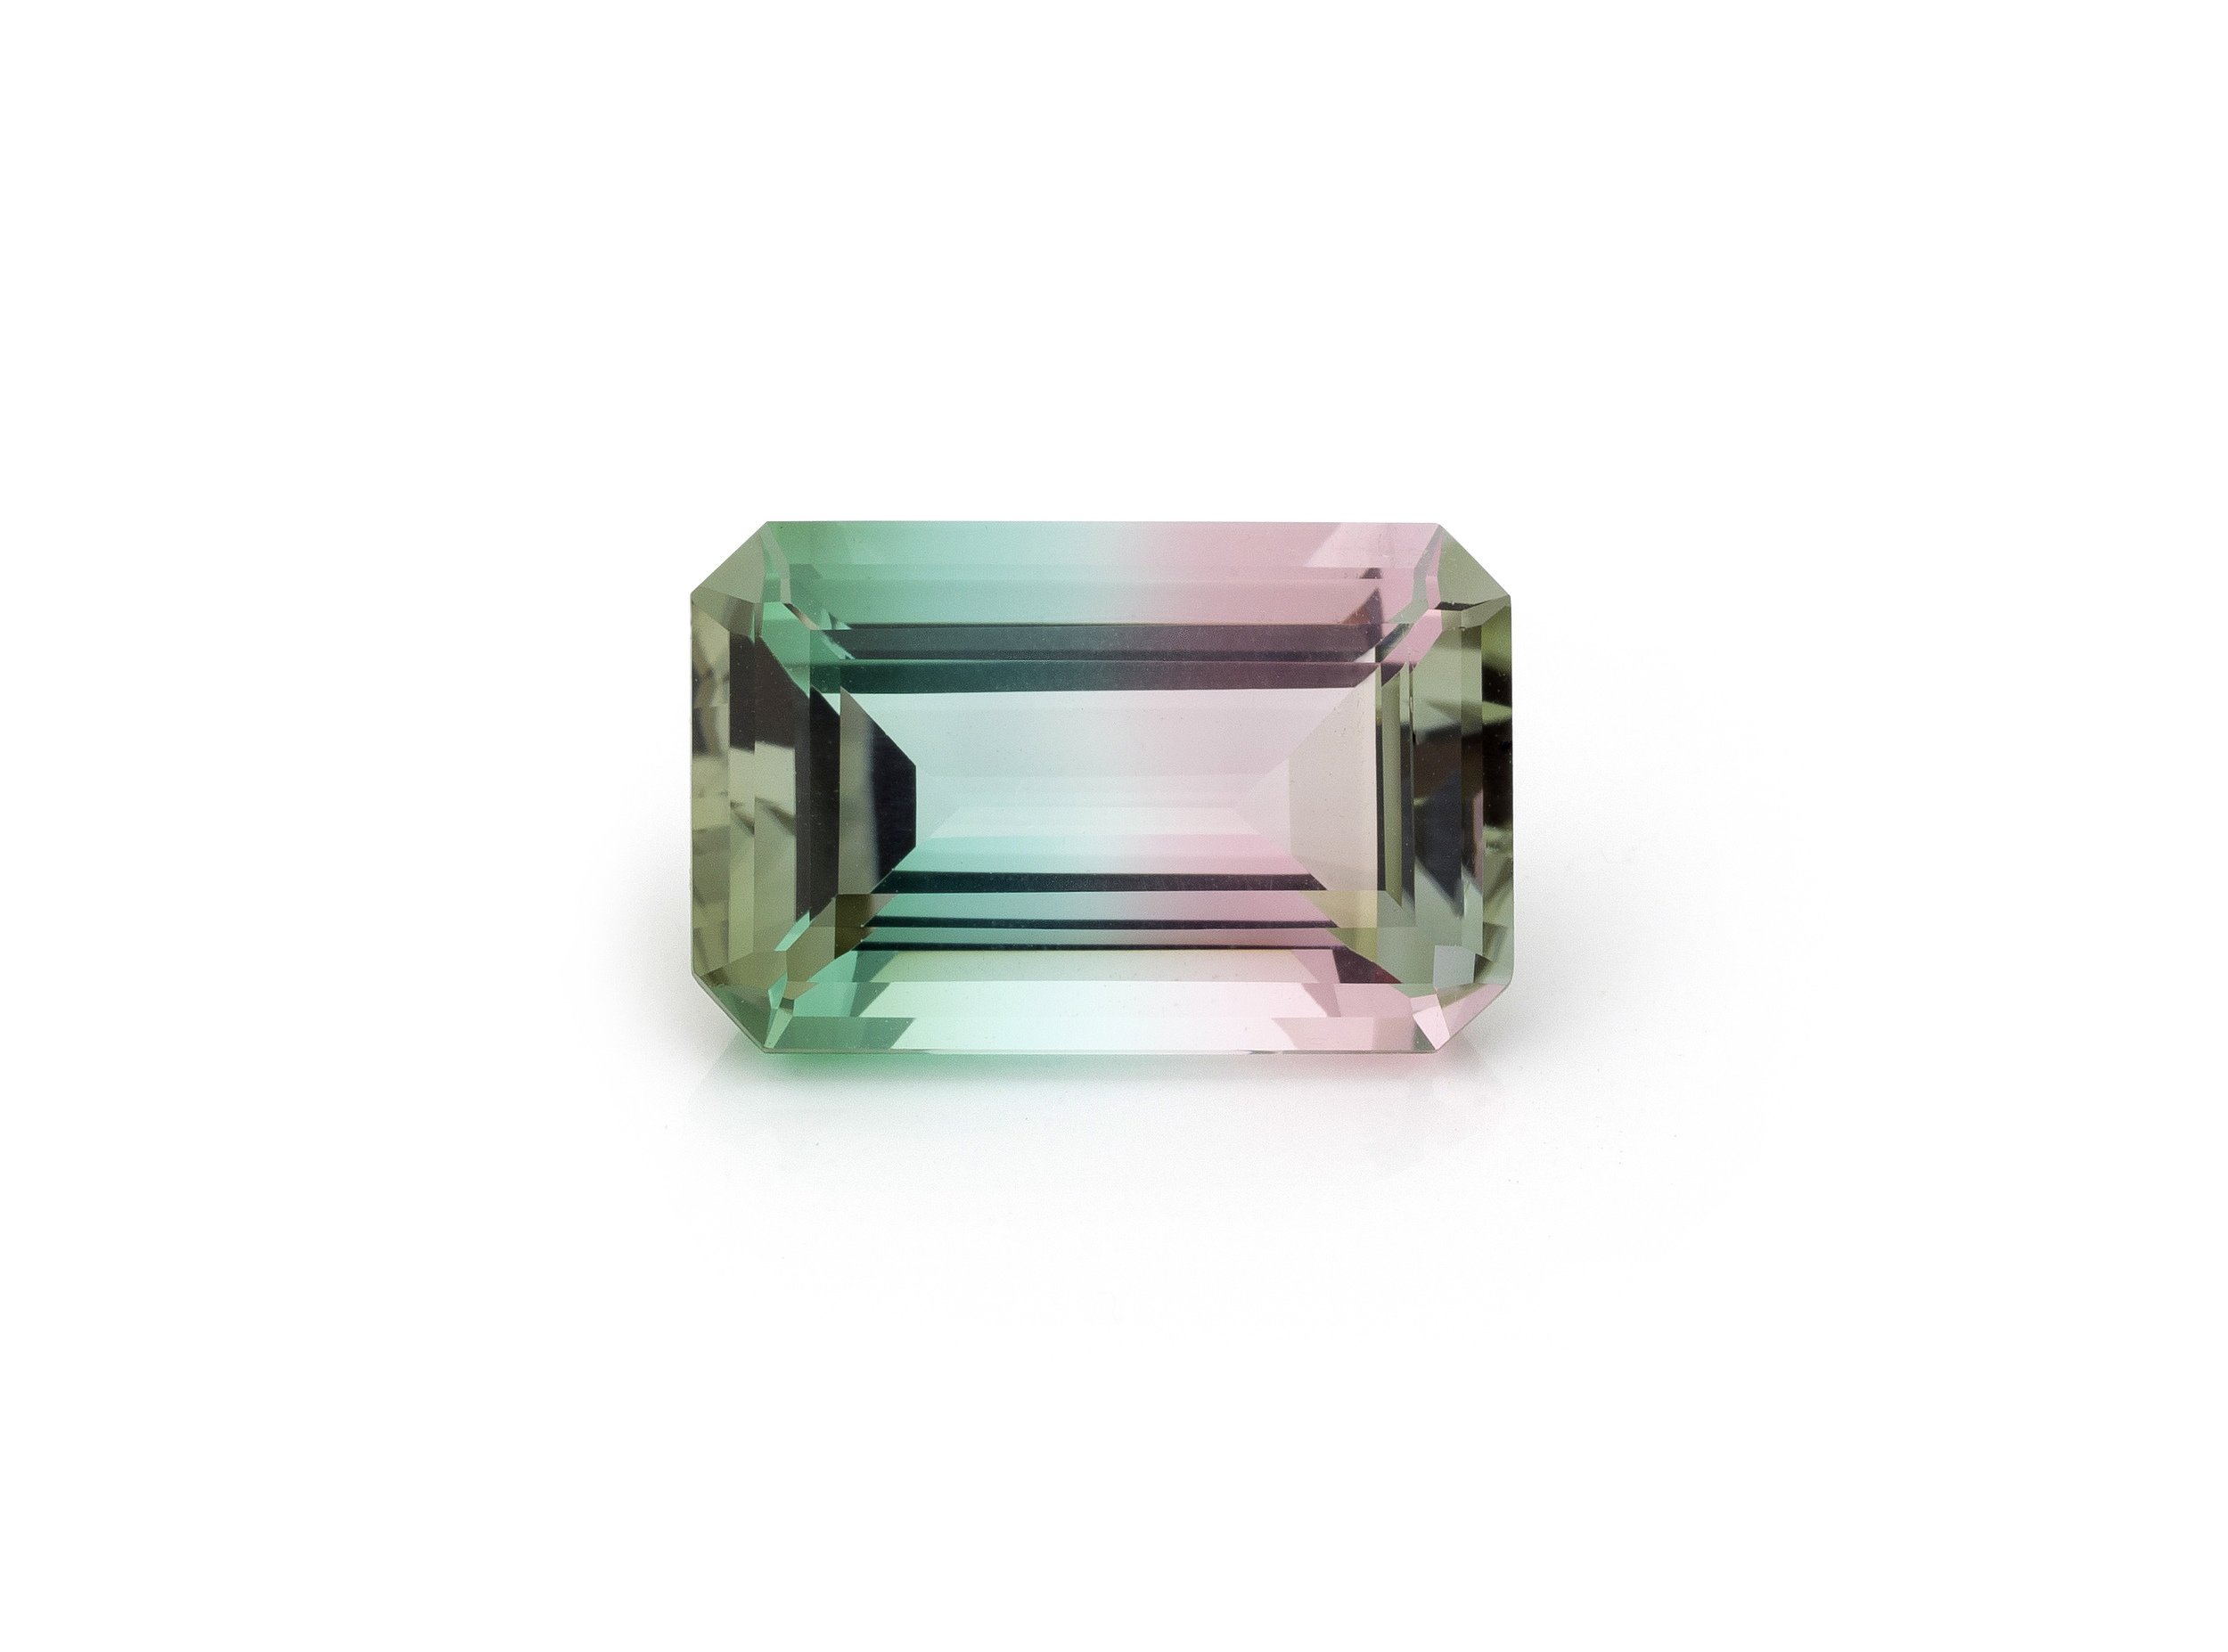 Fine Color Quality Watermelon Tourmaline. Sought after by collectors.